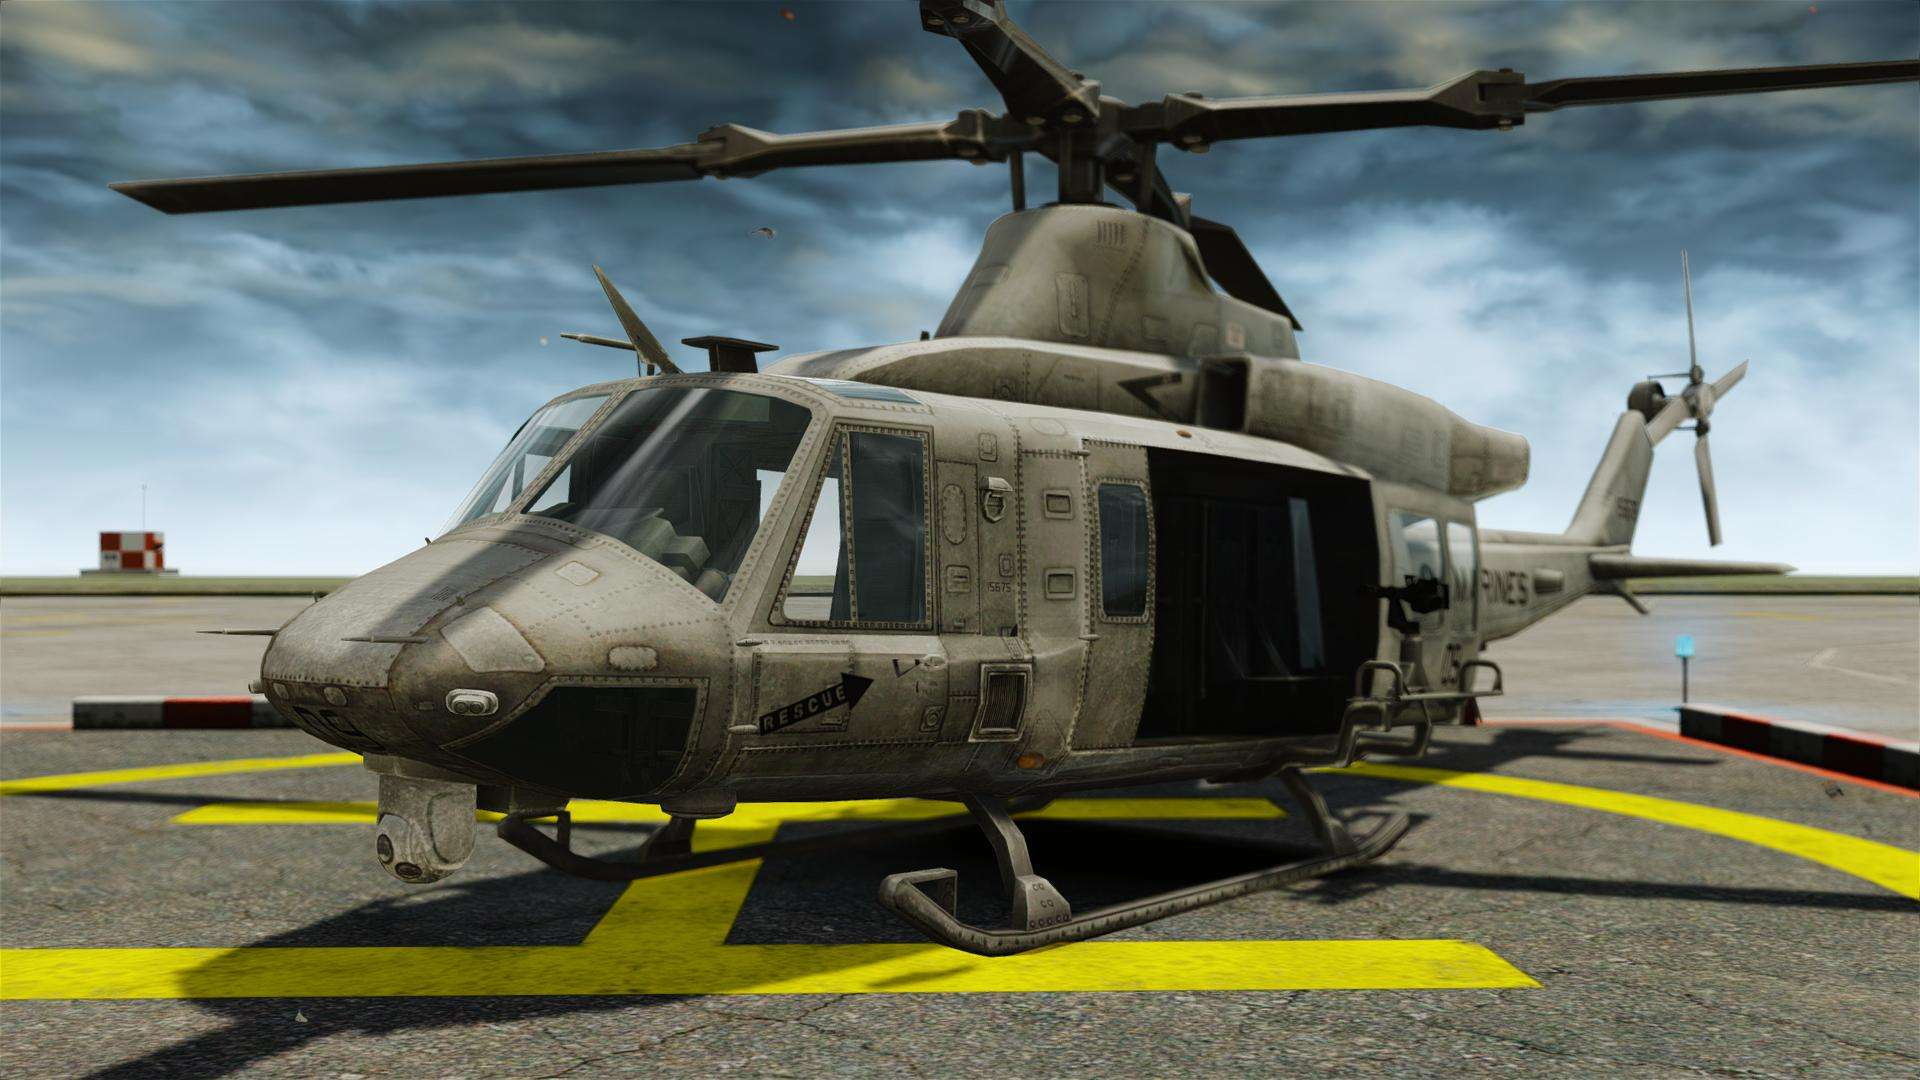 gta cheats helicopter with 27041 Vertolet Bell Uh 1y Venom on Minecraft Inventory besides Gta 5 Cheats Raise Wanted Level also Watch further Gta Tbogt Cheats as well Grand Theft Auto 5 Gta V How To Get A Helicopter.